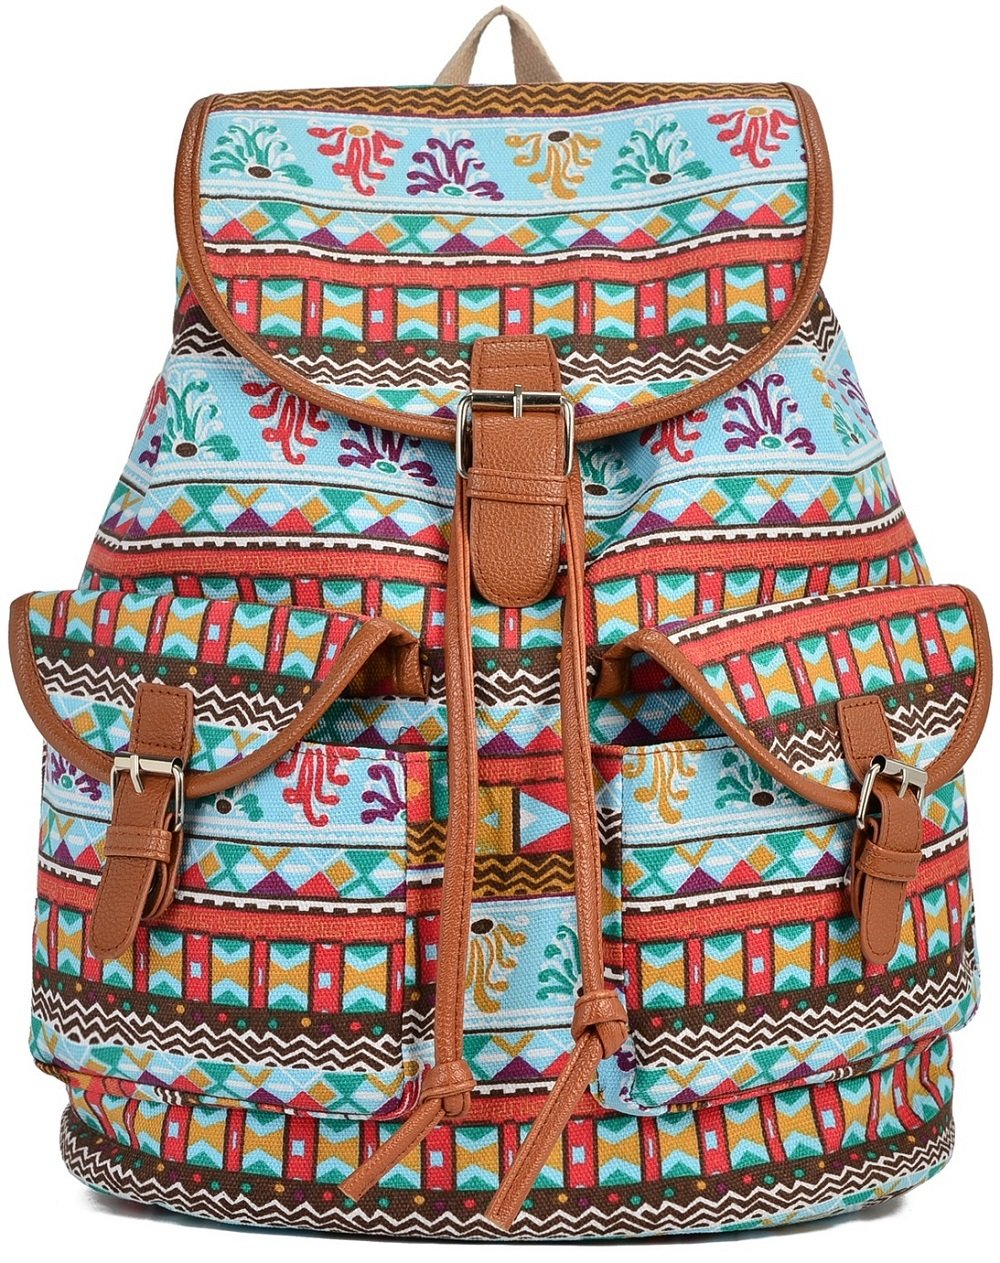 Major-Q Women's Cotton Canvas Travel Backpack for Girls/Teens Shoelaces, Hprd, M M US